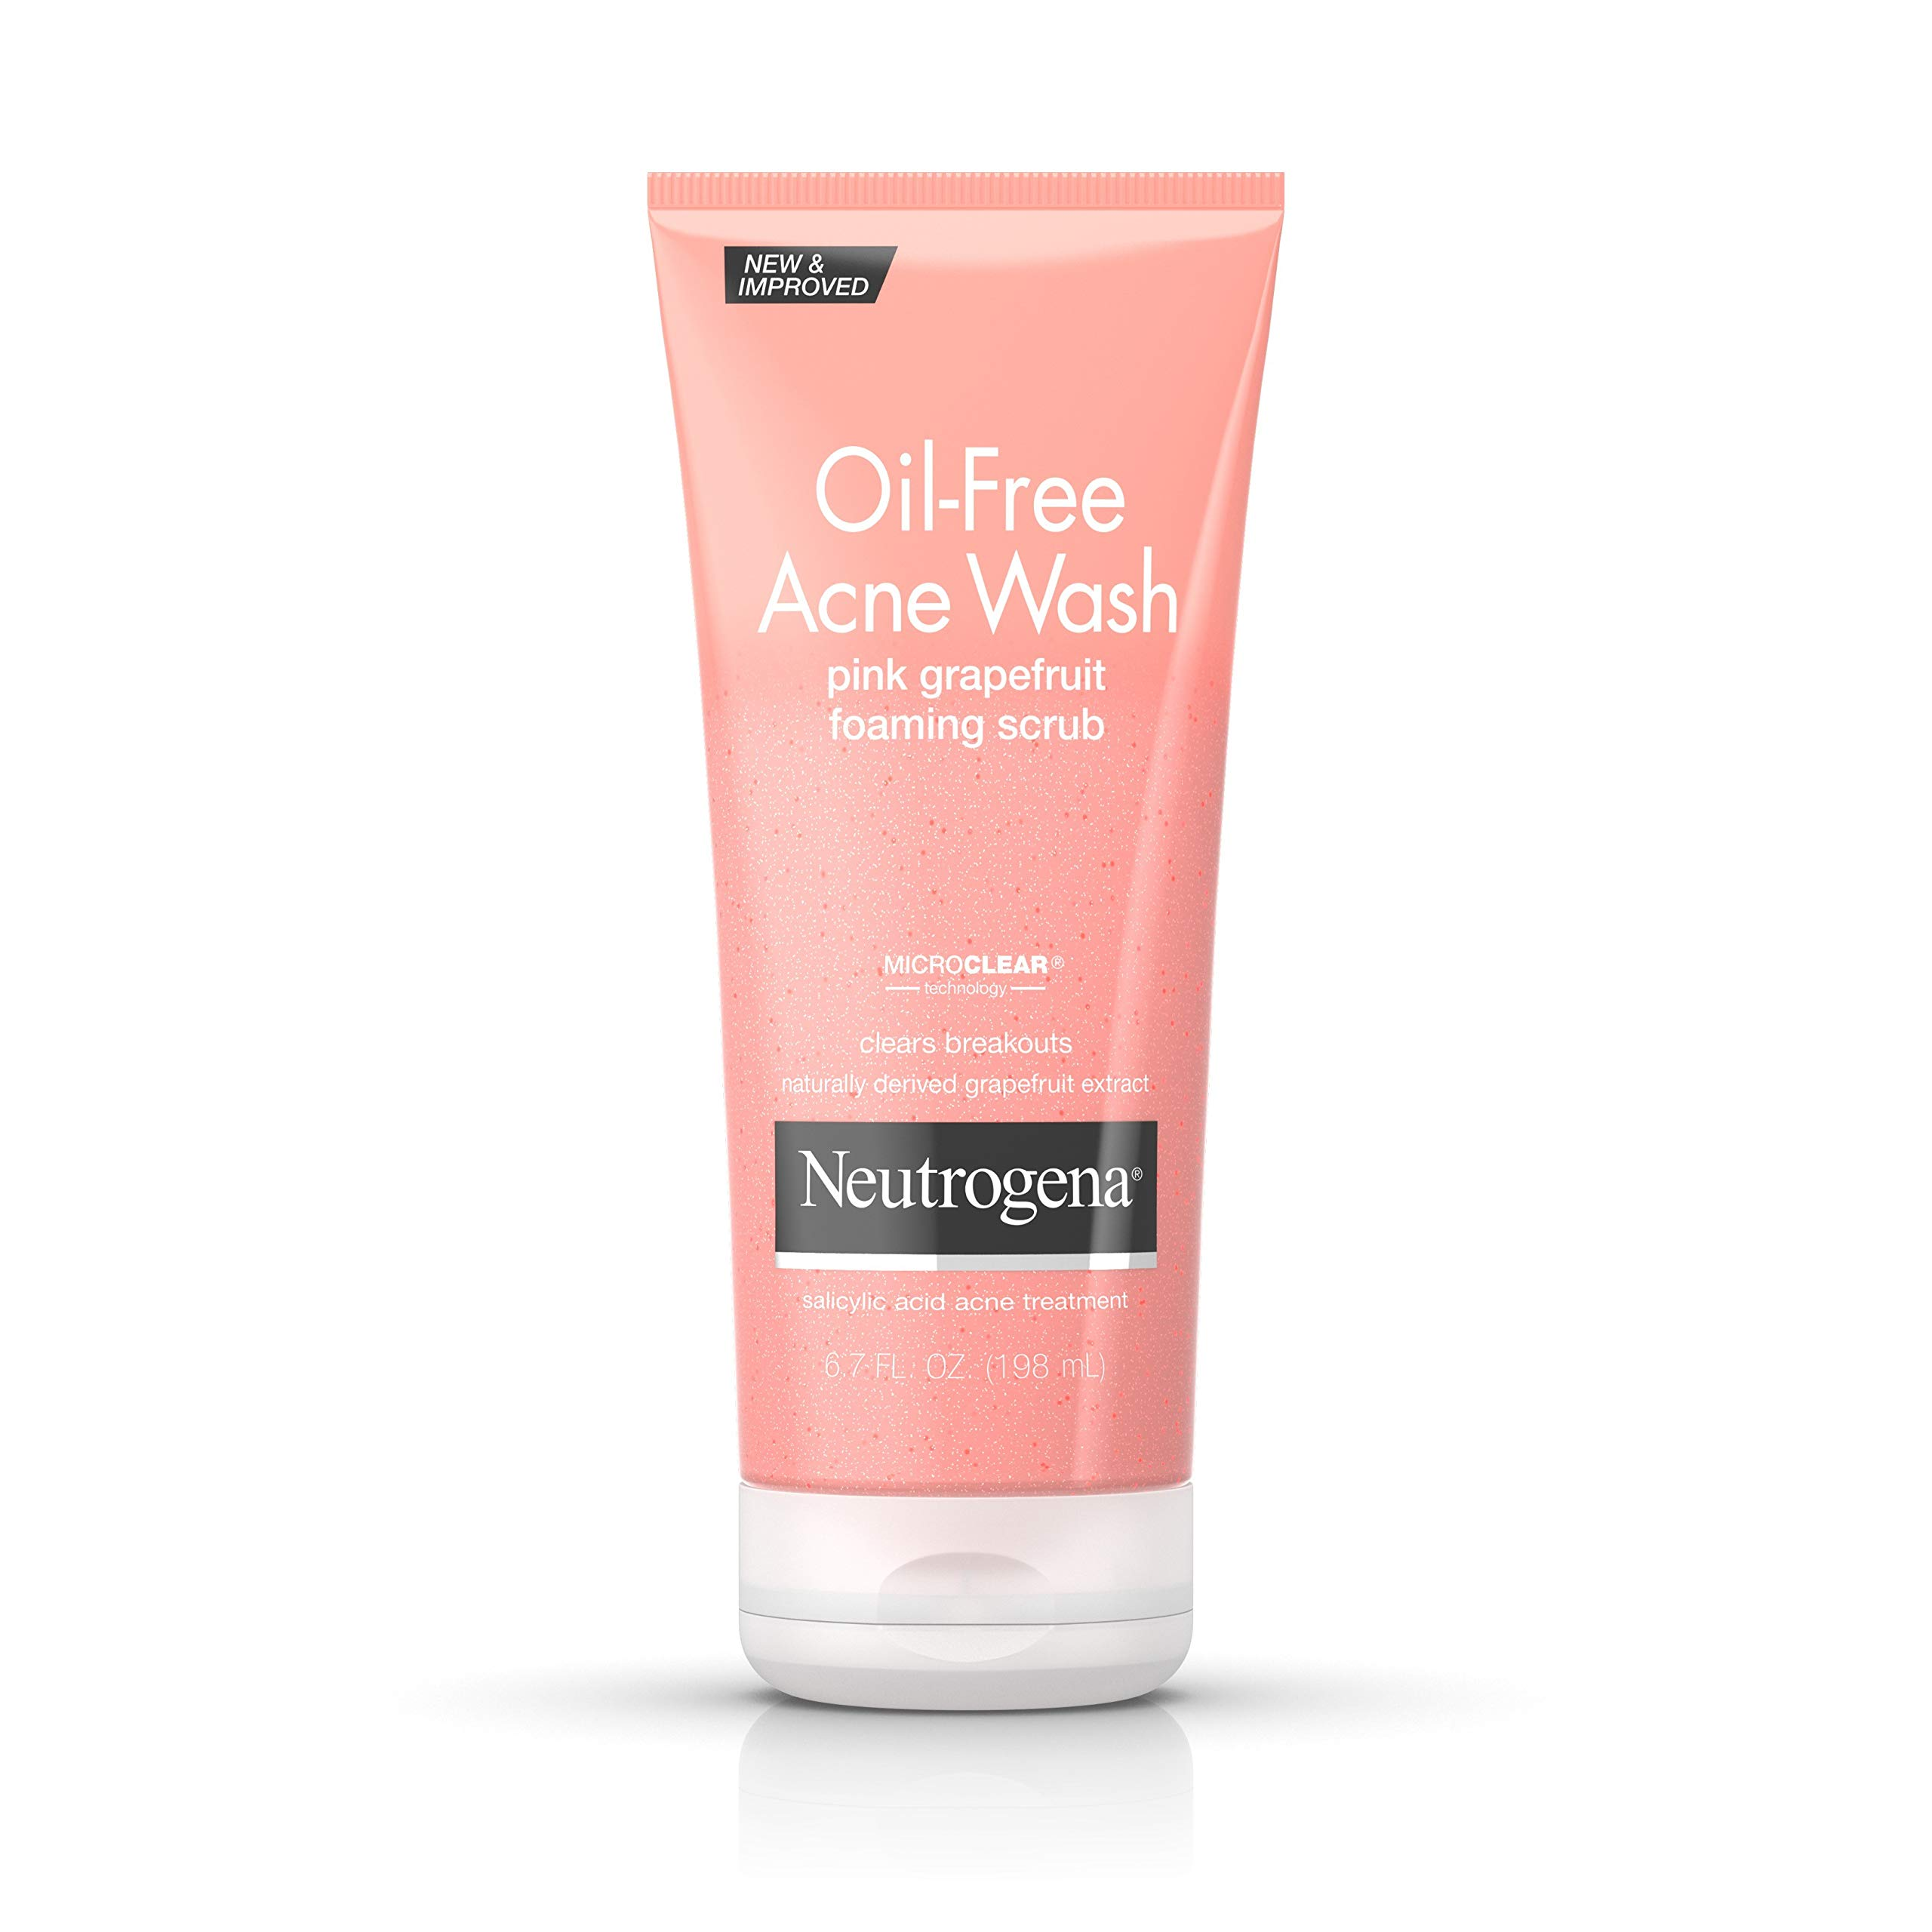 Neutrogena Oil Free Pink Grapefruit Acne Face Wash with Vitamin C, Salicylic Acid Acne Treatment Medicine, Gentle Foaming Vitamin C Facial Scrub to Treat and Prevent Breakouts, 6.7 fl. oz (Pack of 3) by Neutrogena